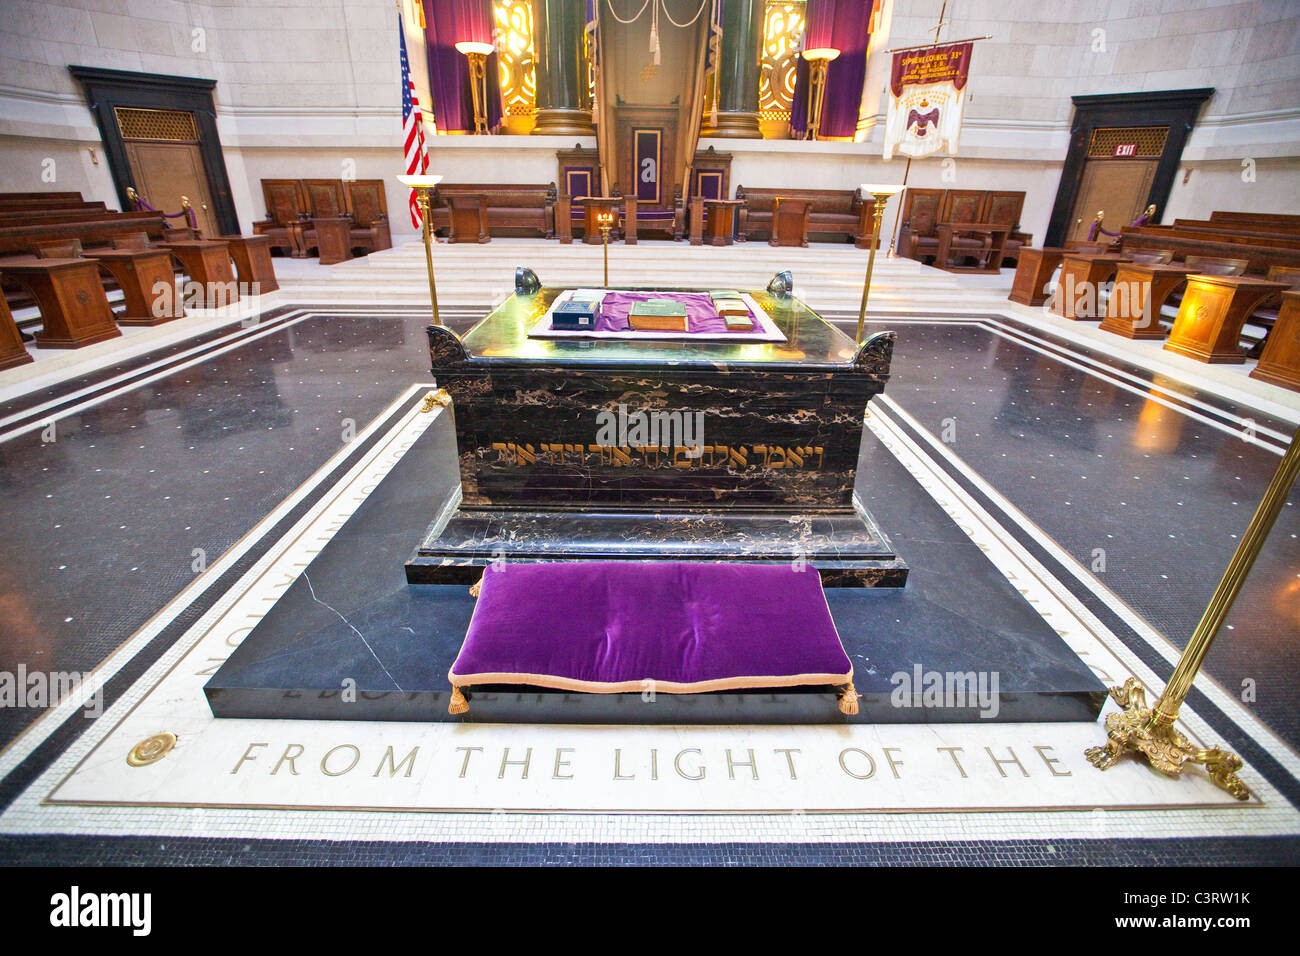 Holy books on an alter at the Scottish Rite of Freemasonry building in Washington DC - Stock Image